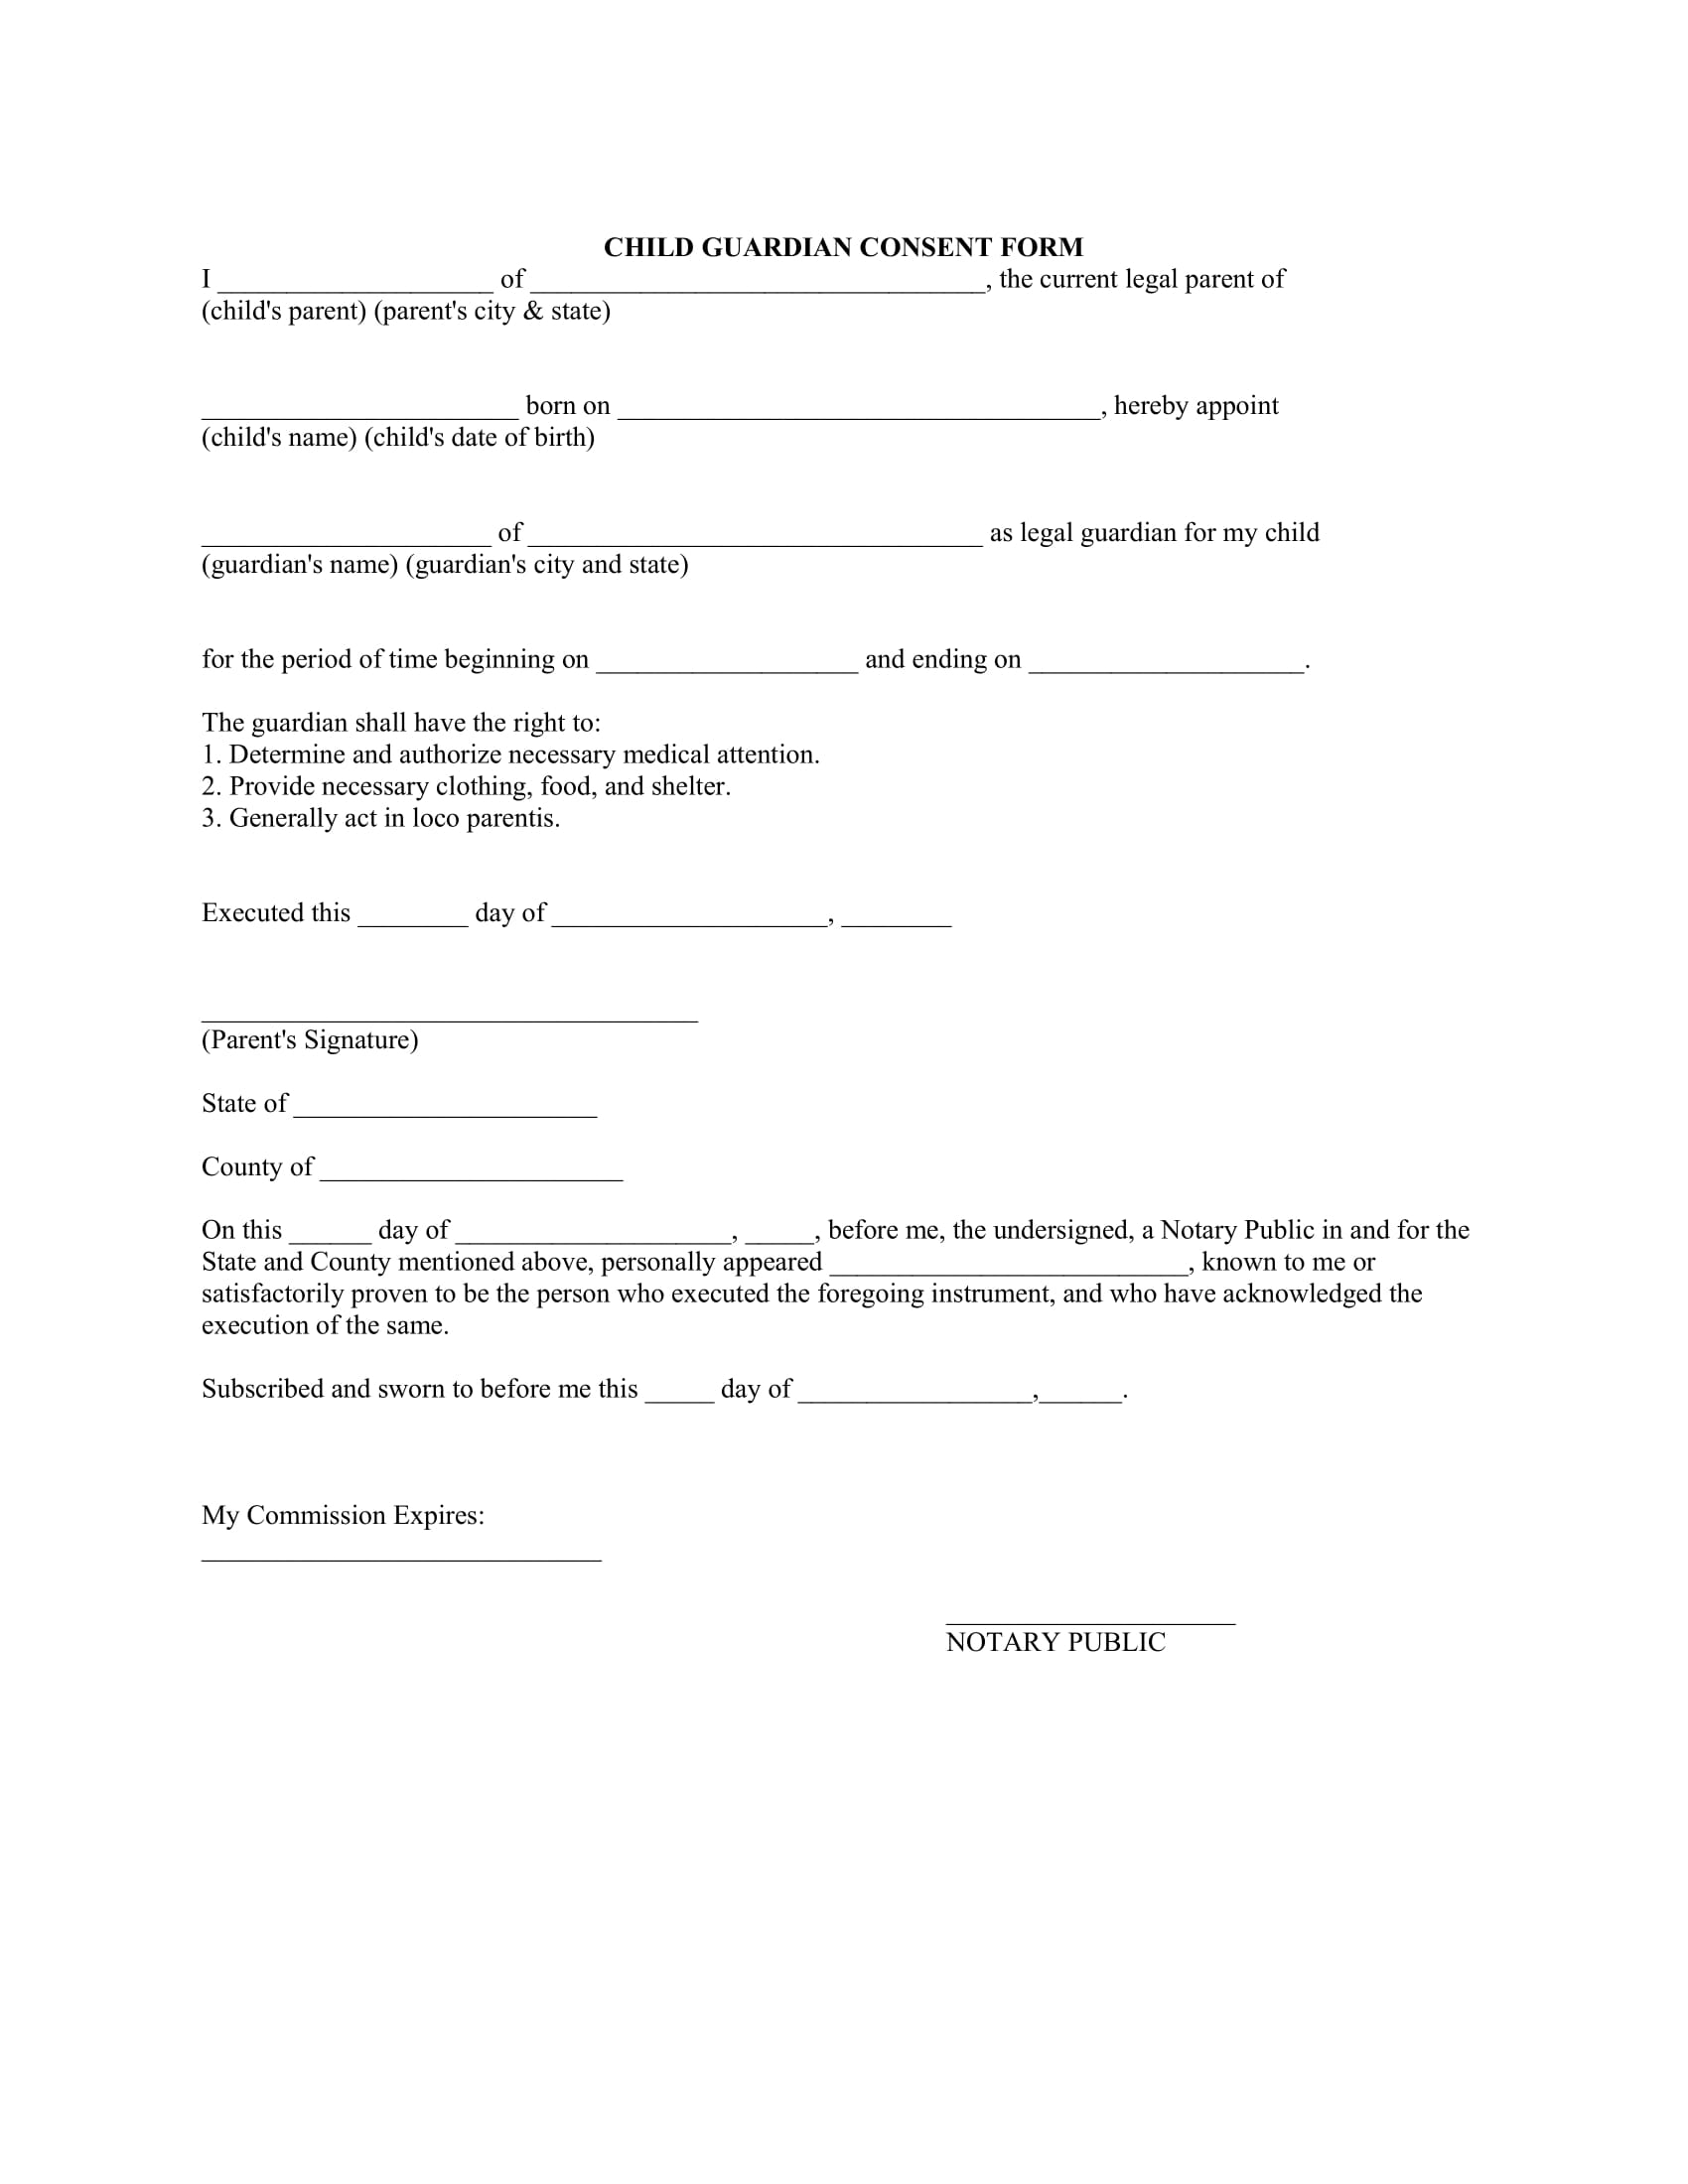 child guardian consent form 1